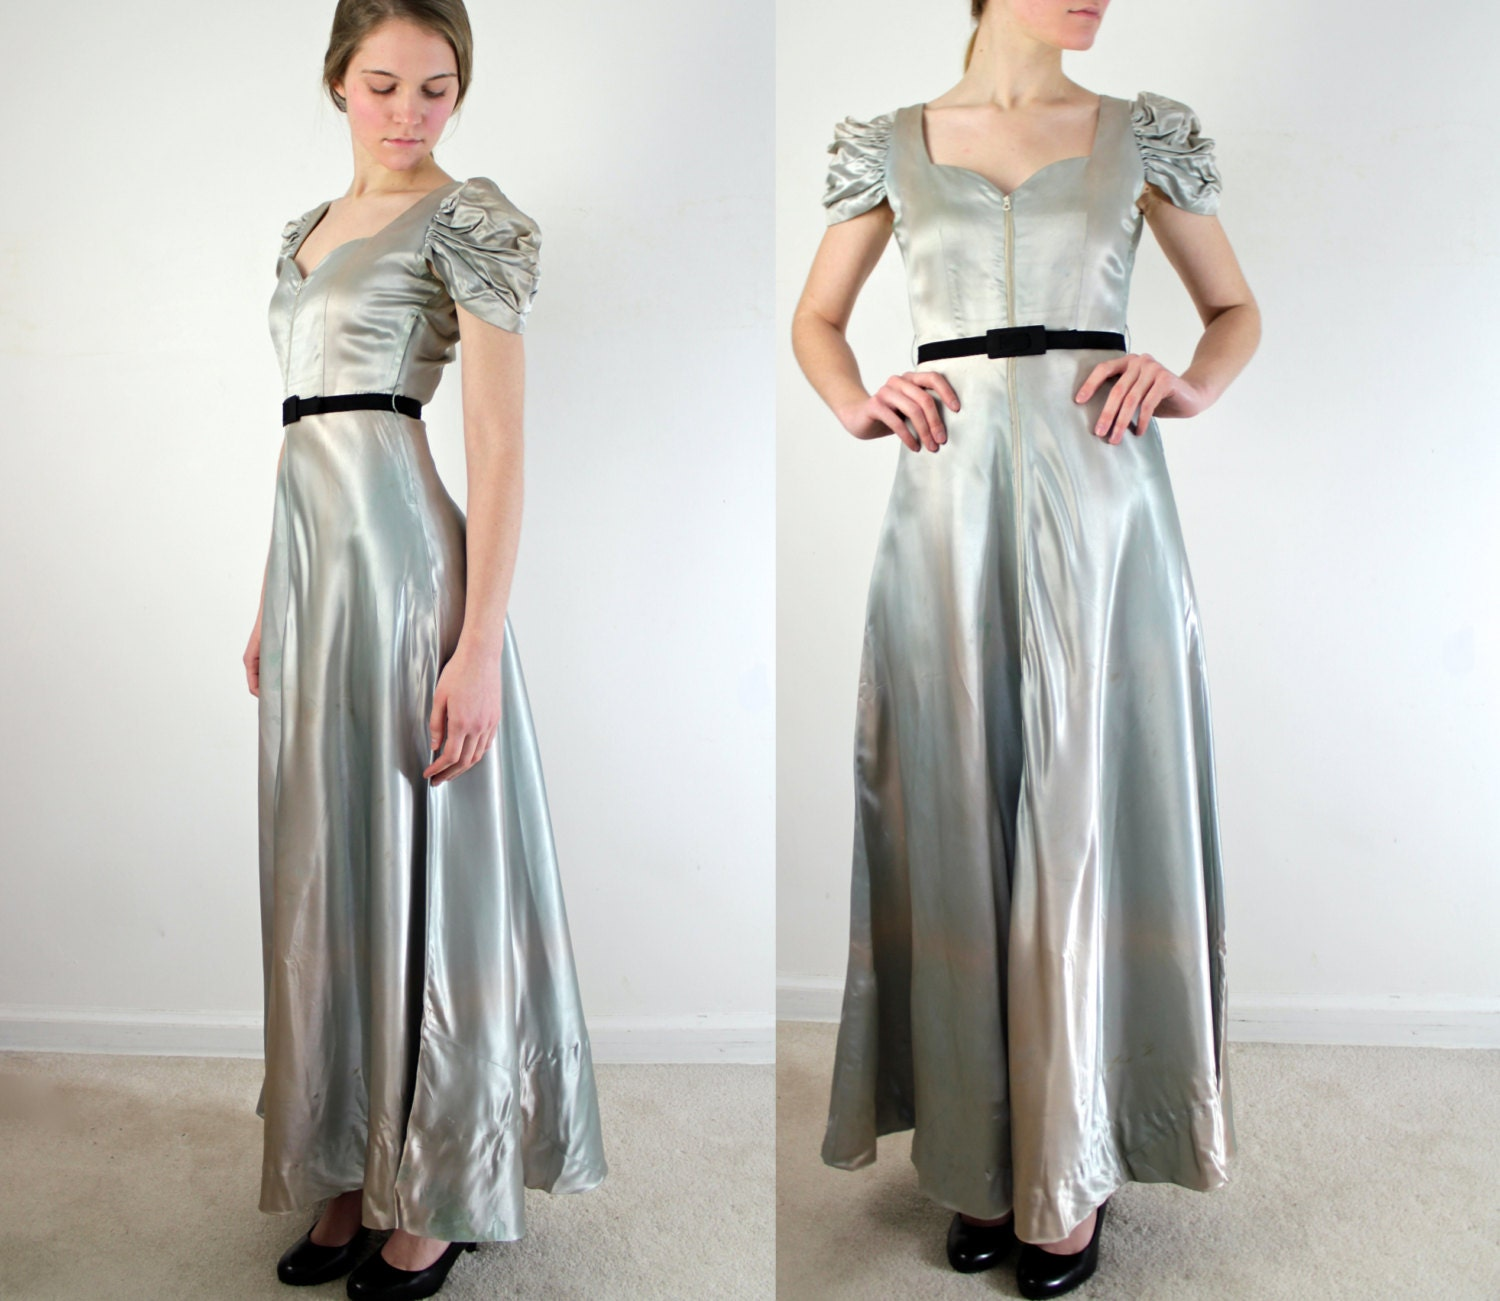 Vintage 1930s Dress Ombre Liquid Satin Evening Gown